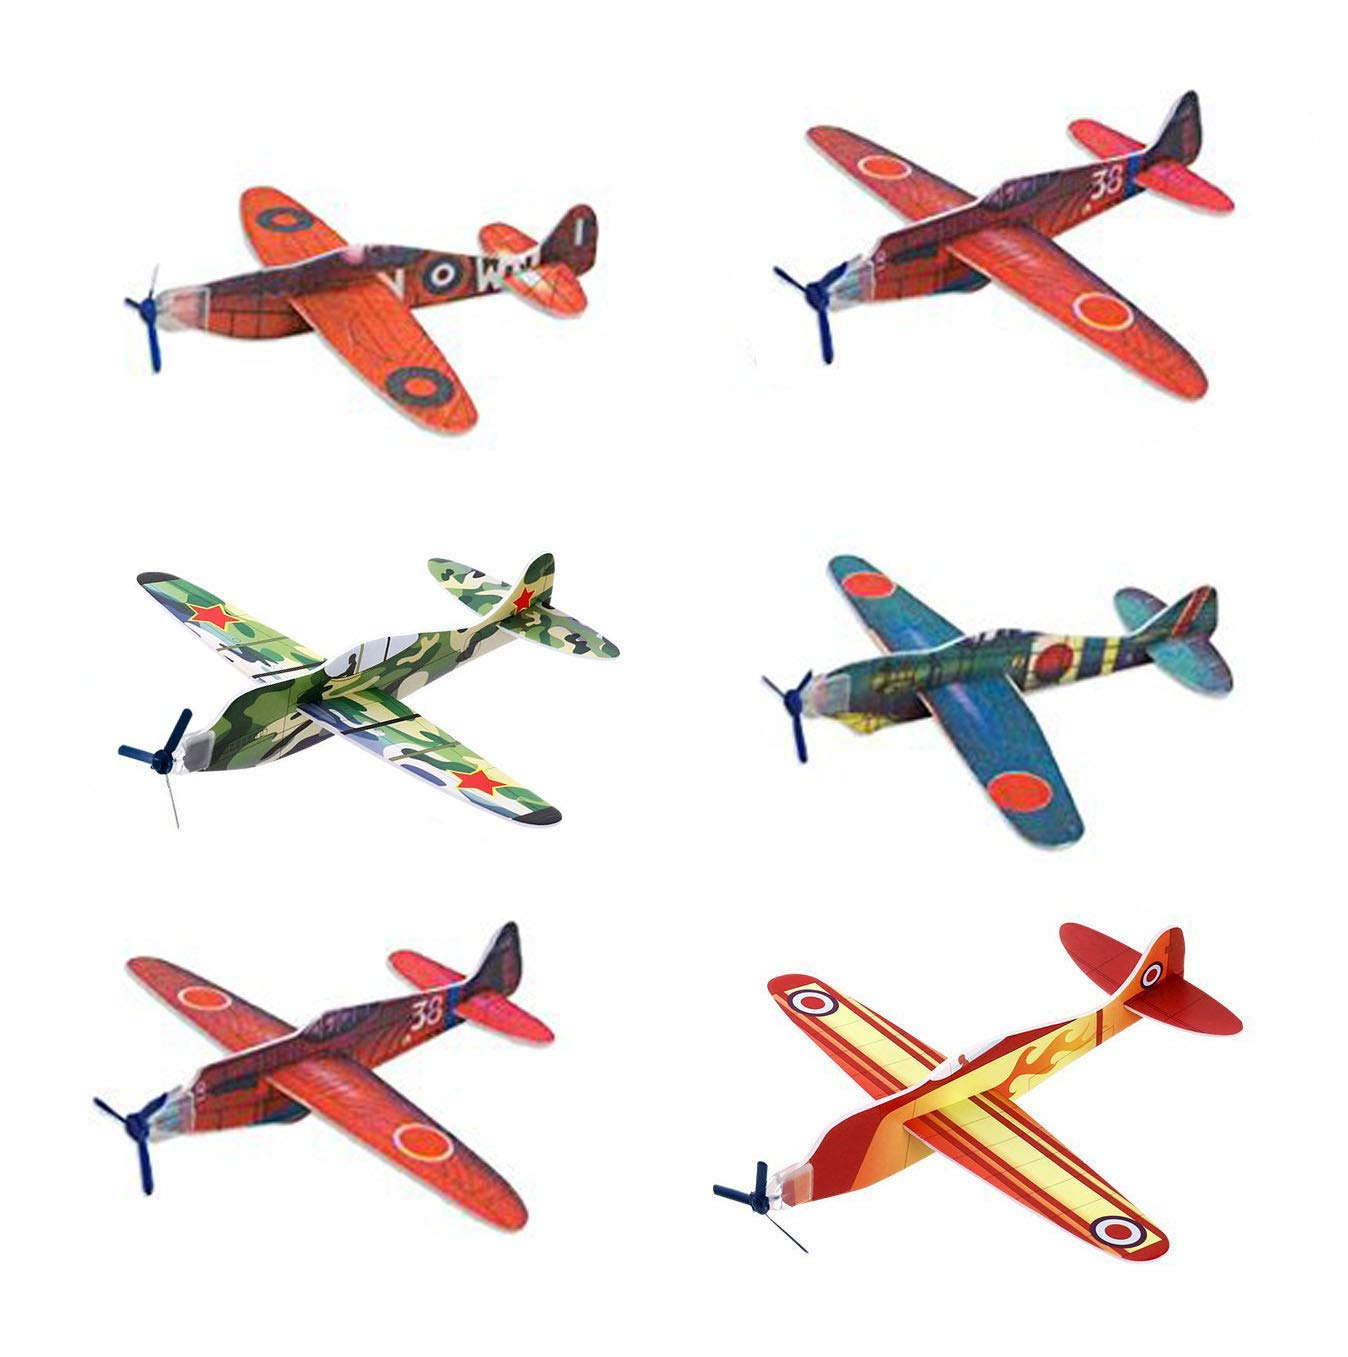 AISHNE Glider Plane Flying Gliders For Kids Foam Hand Airplane Kit Toys 24 Pack